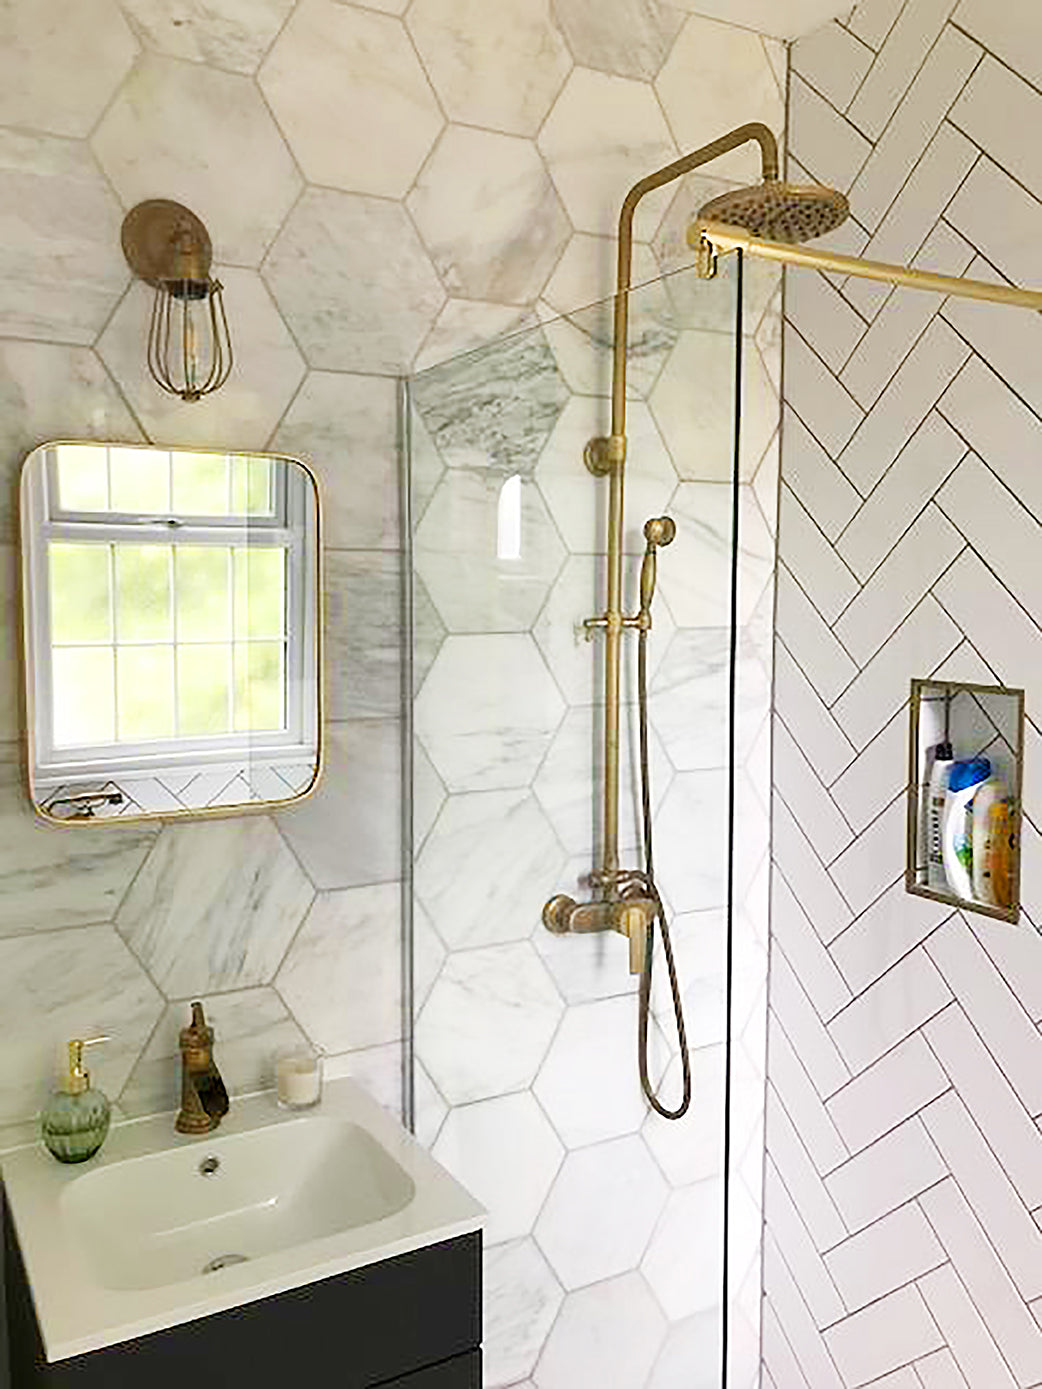 Brass finishing touches in a chic bathroom